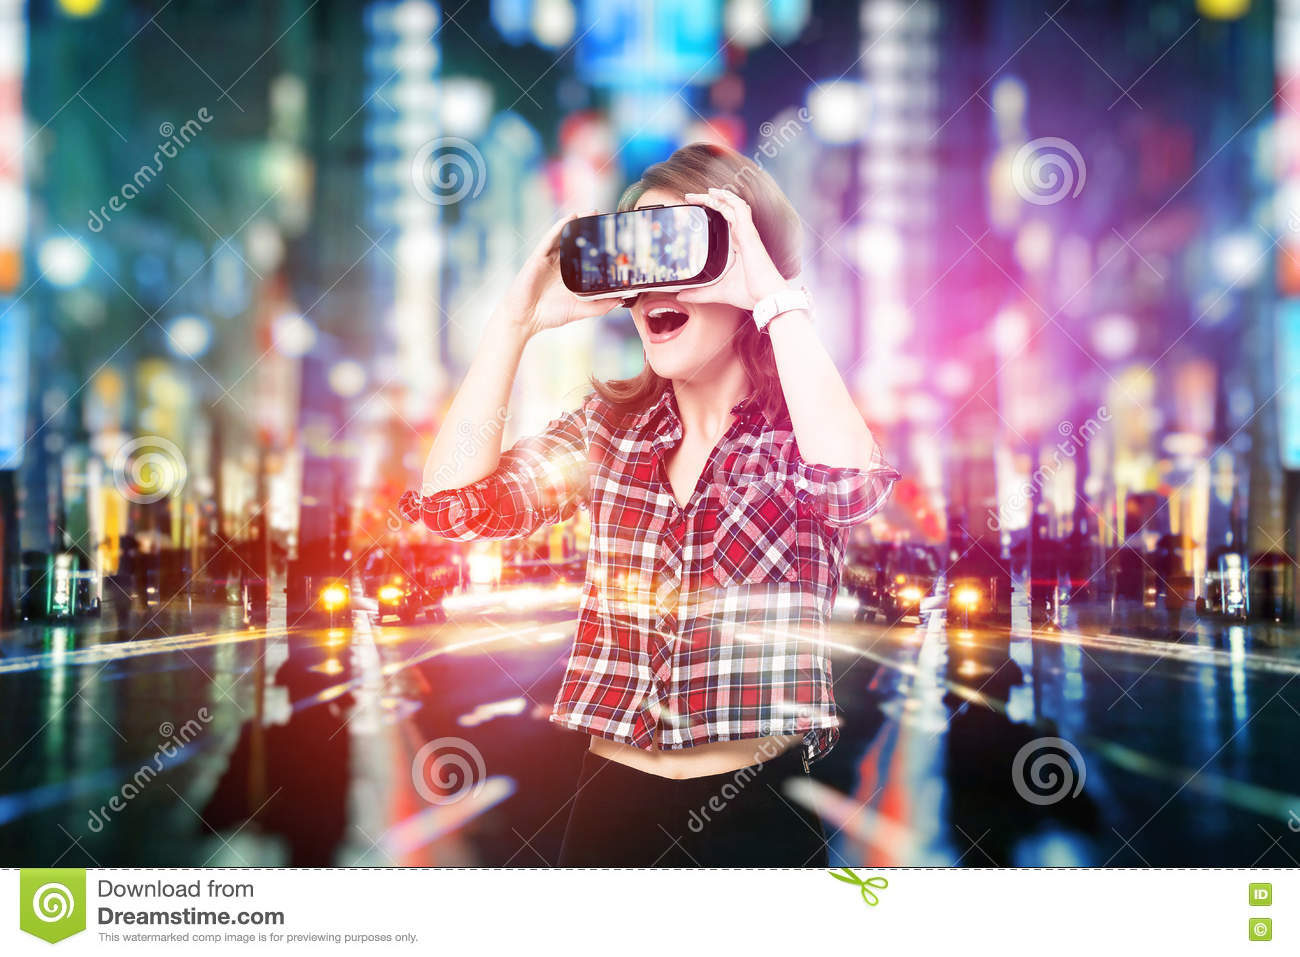 Double exposure, young girl getting experience VR headset, is using augmented reality glasses, being in a virtual